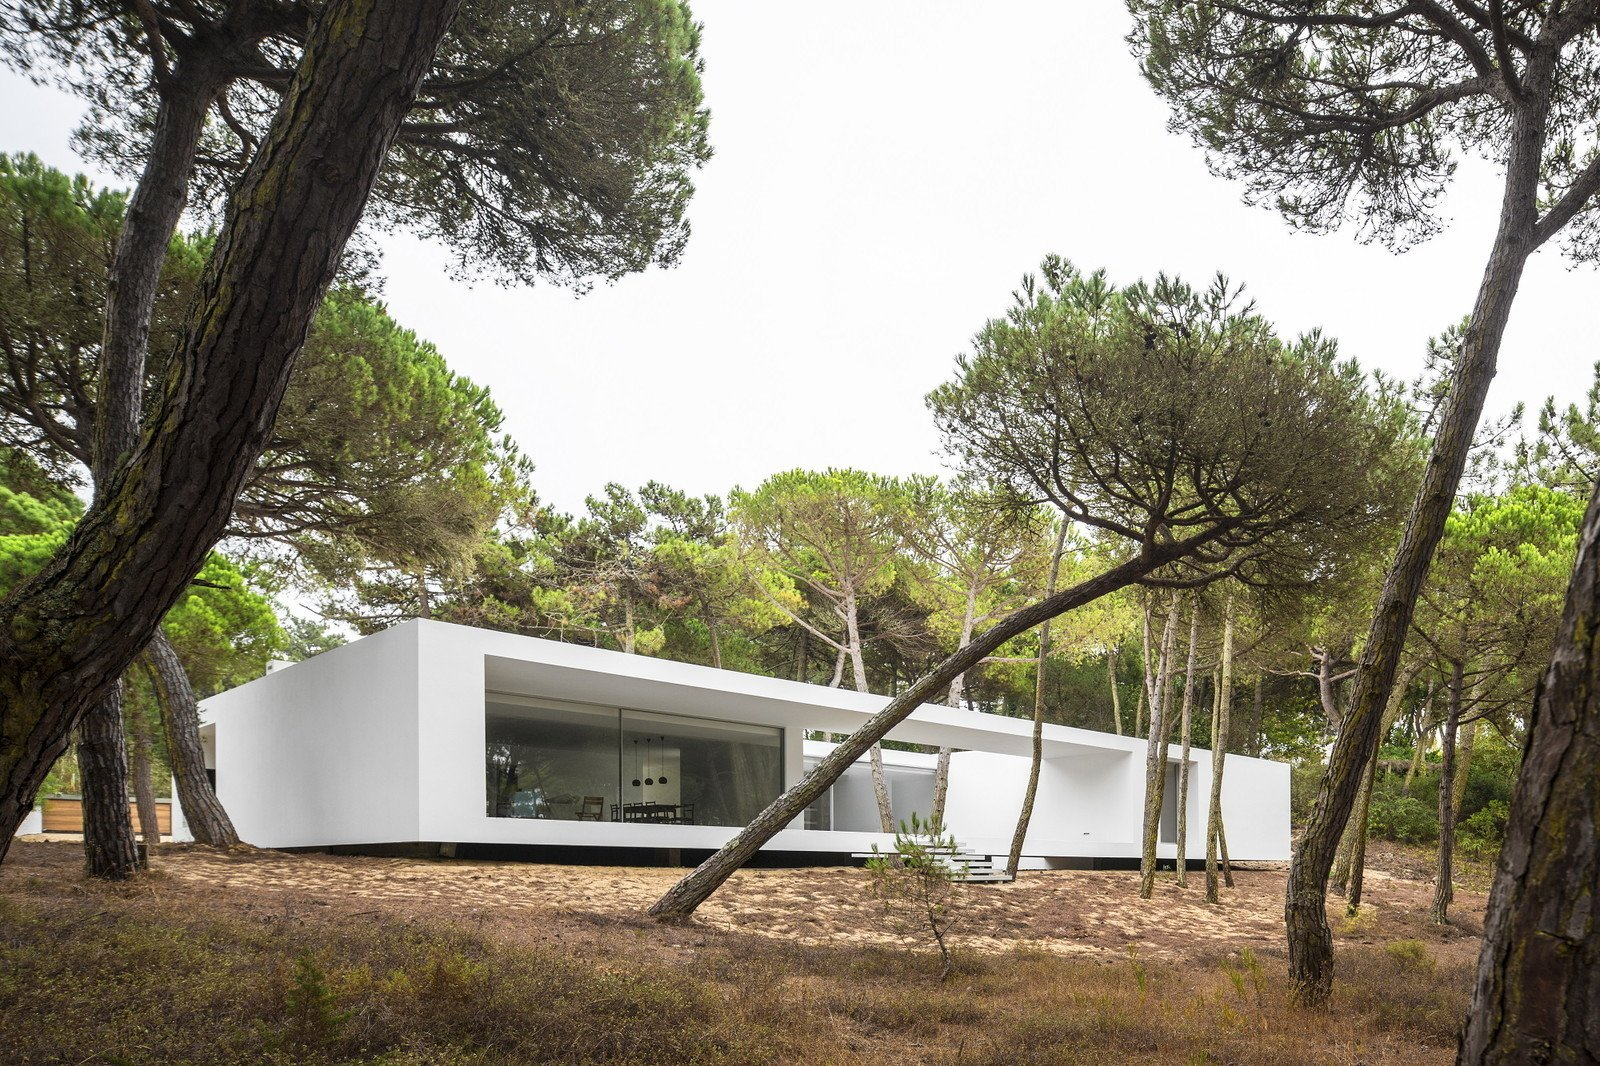 Photo 8 of 11 in 10 Bright White Cubist Homes Across the Globe